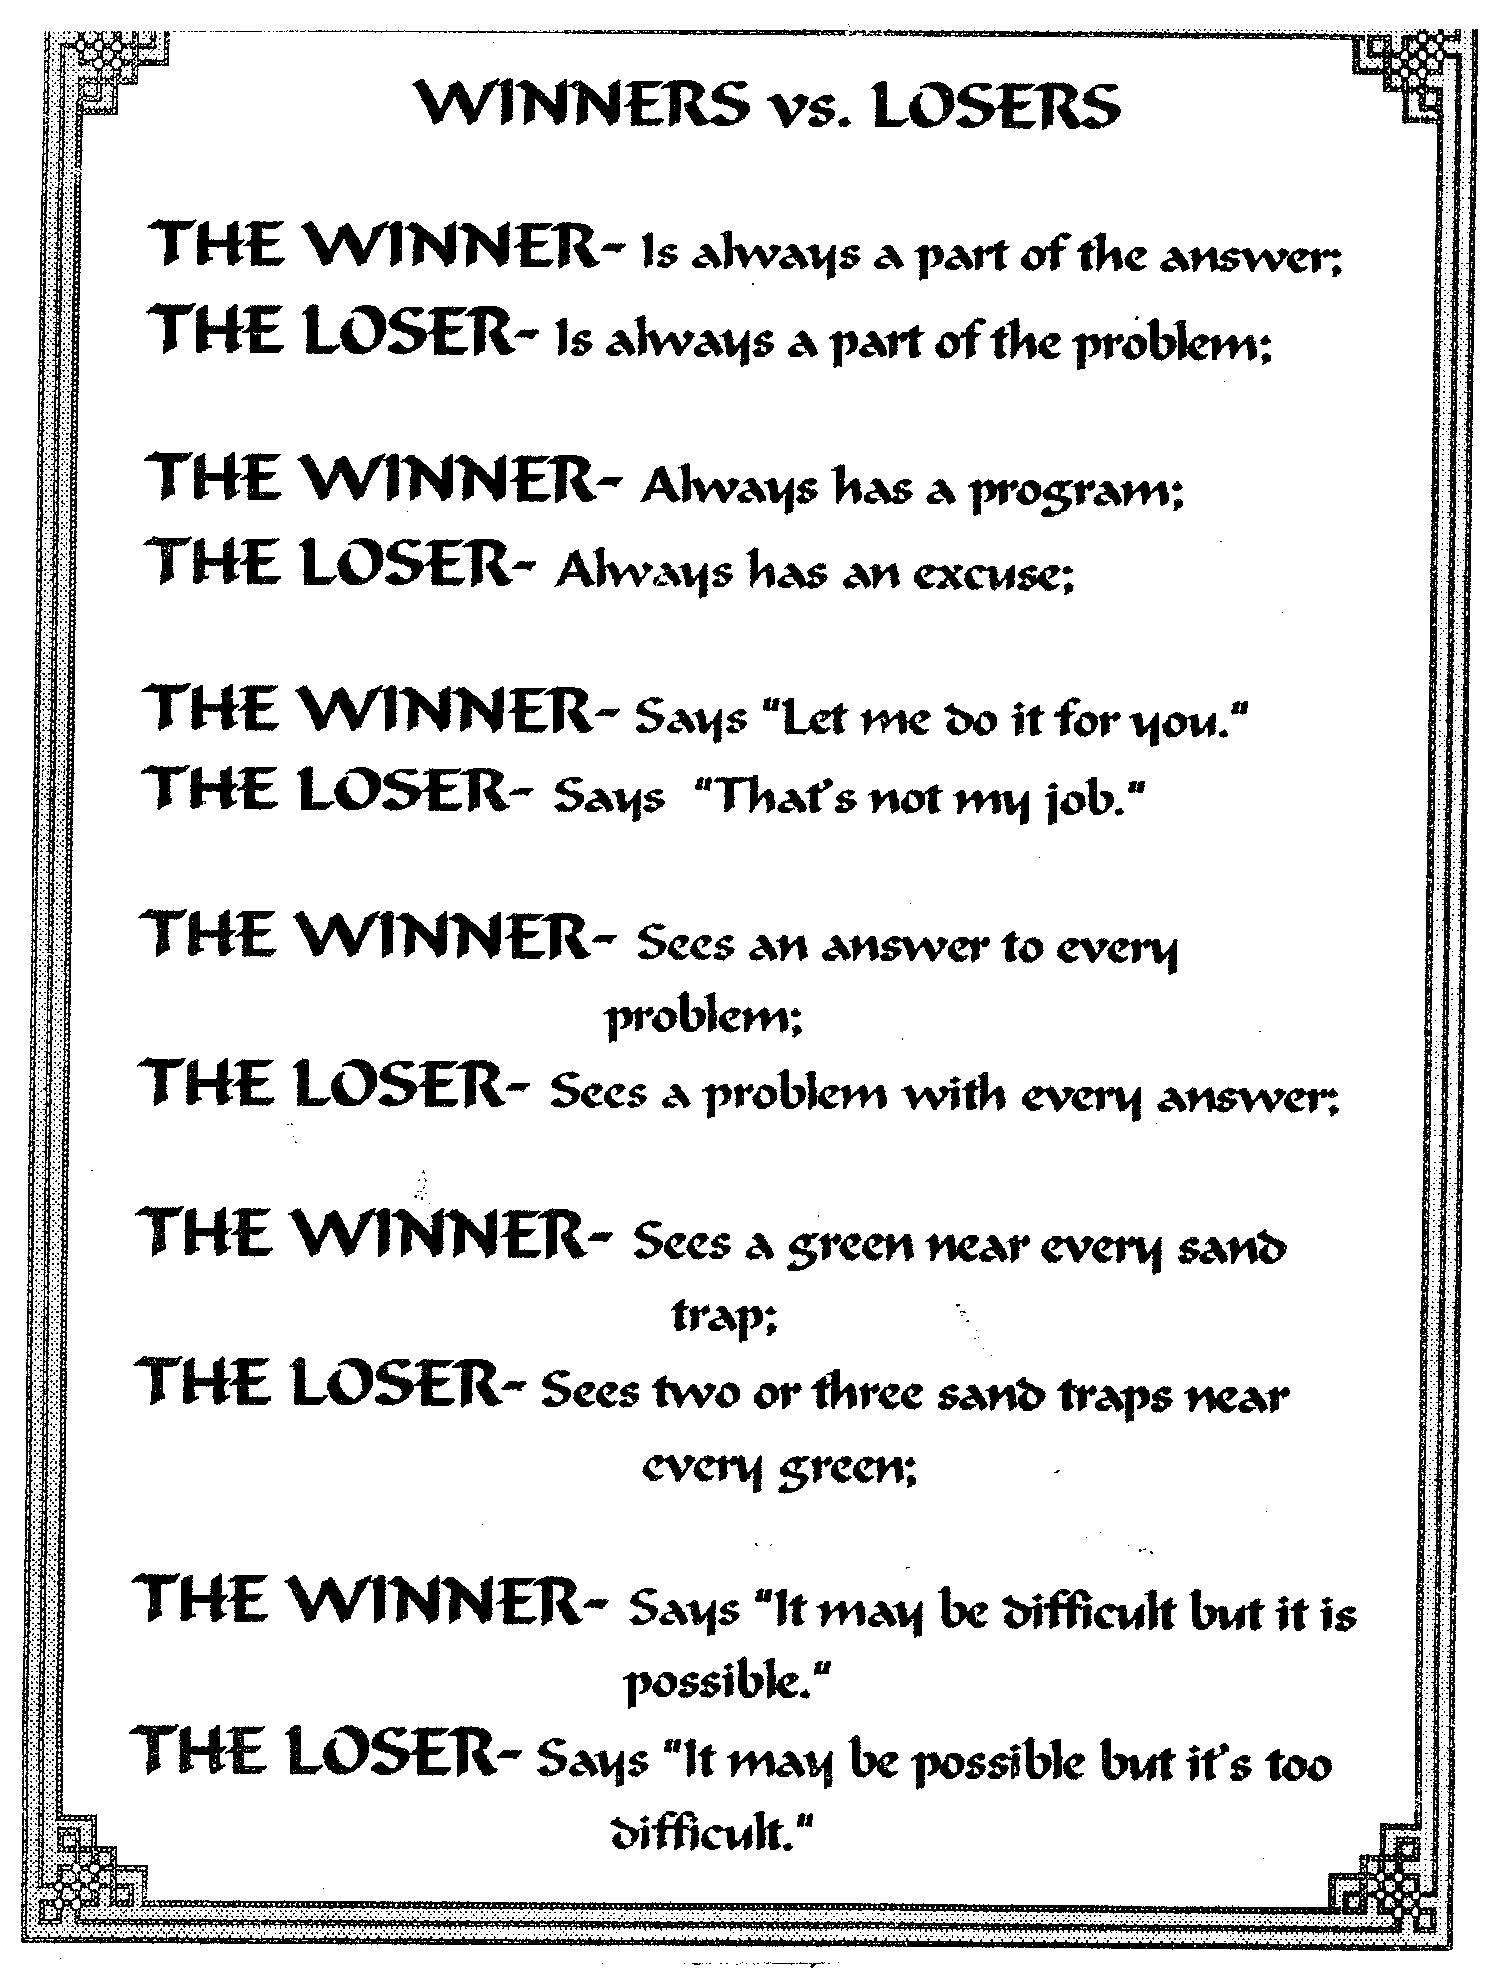 Quotes of the famous Losers